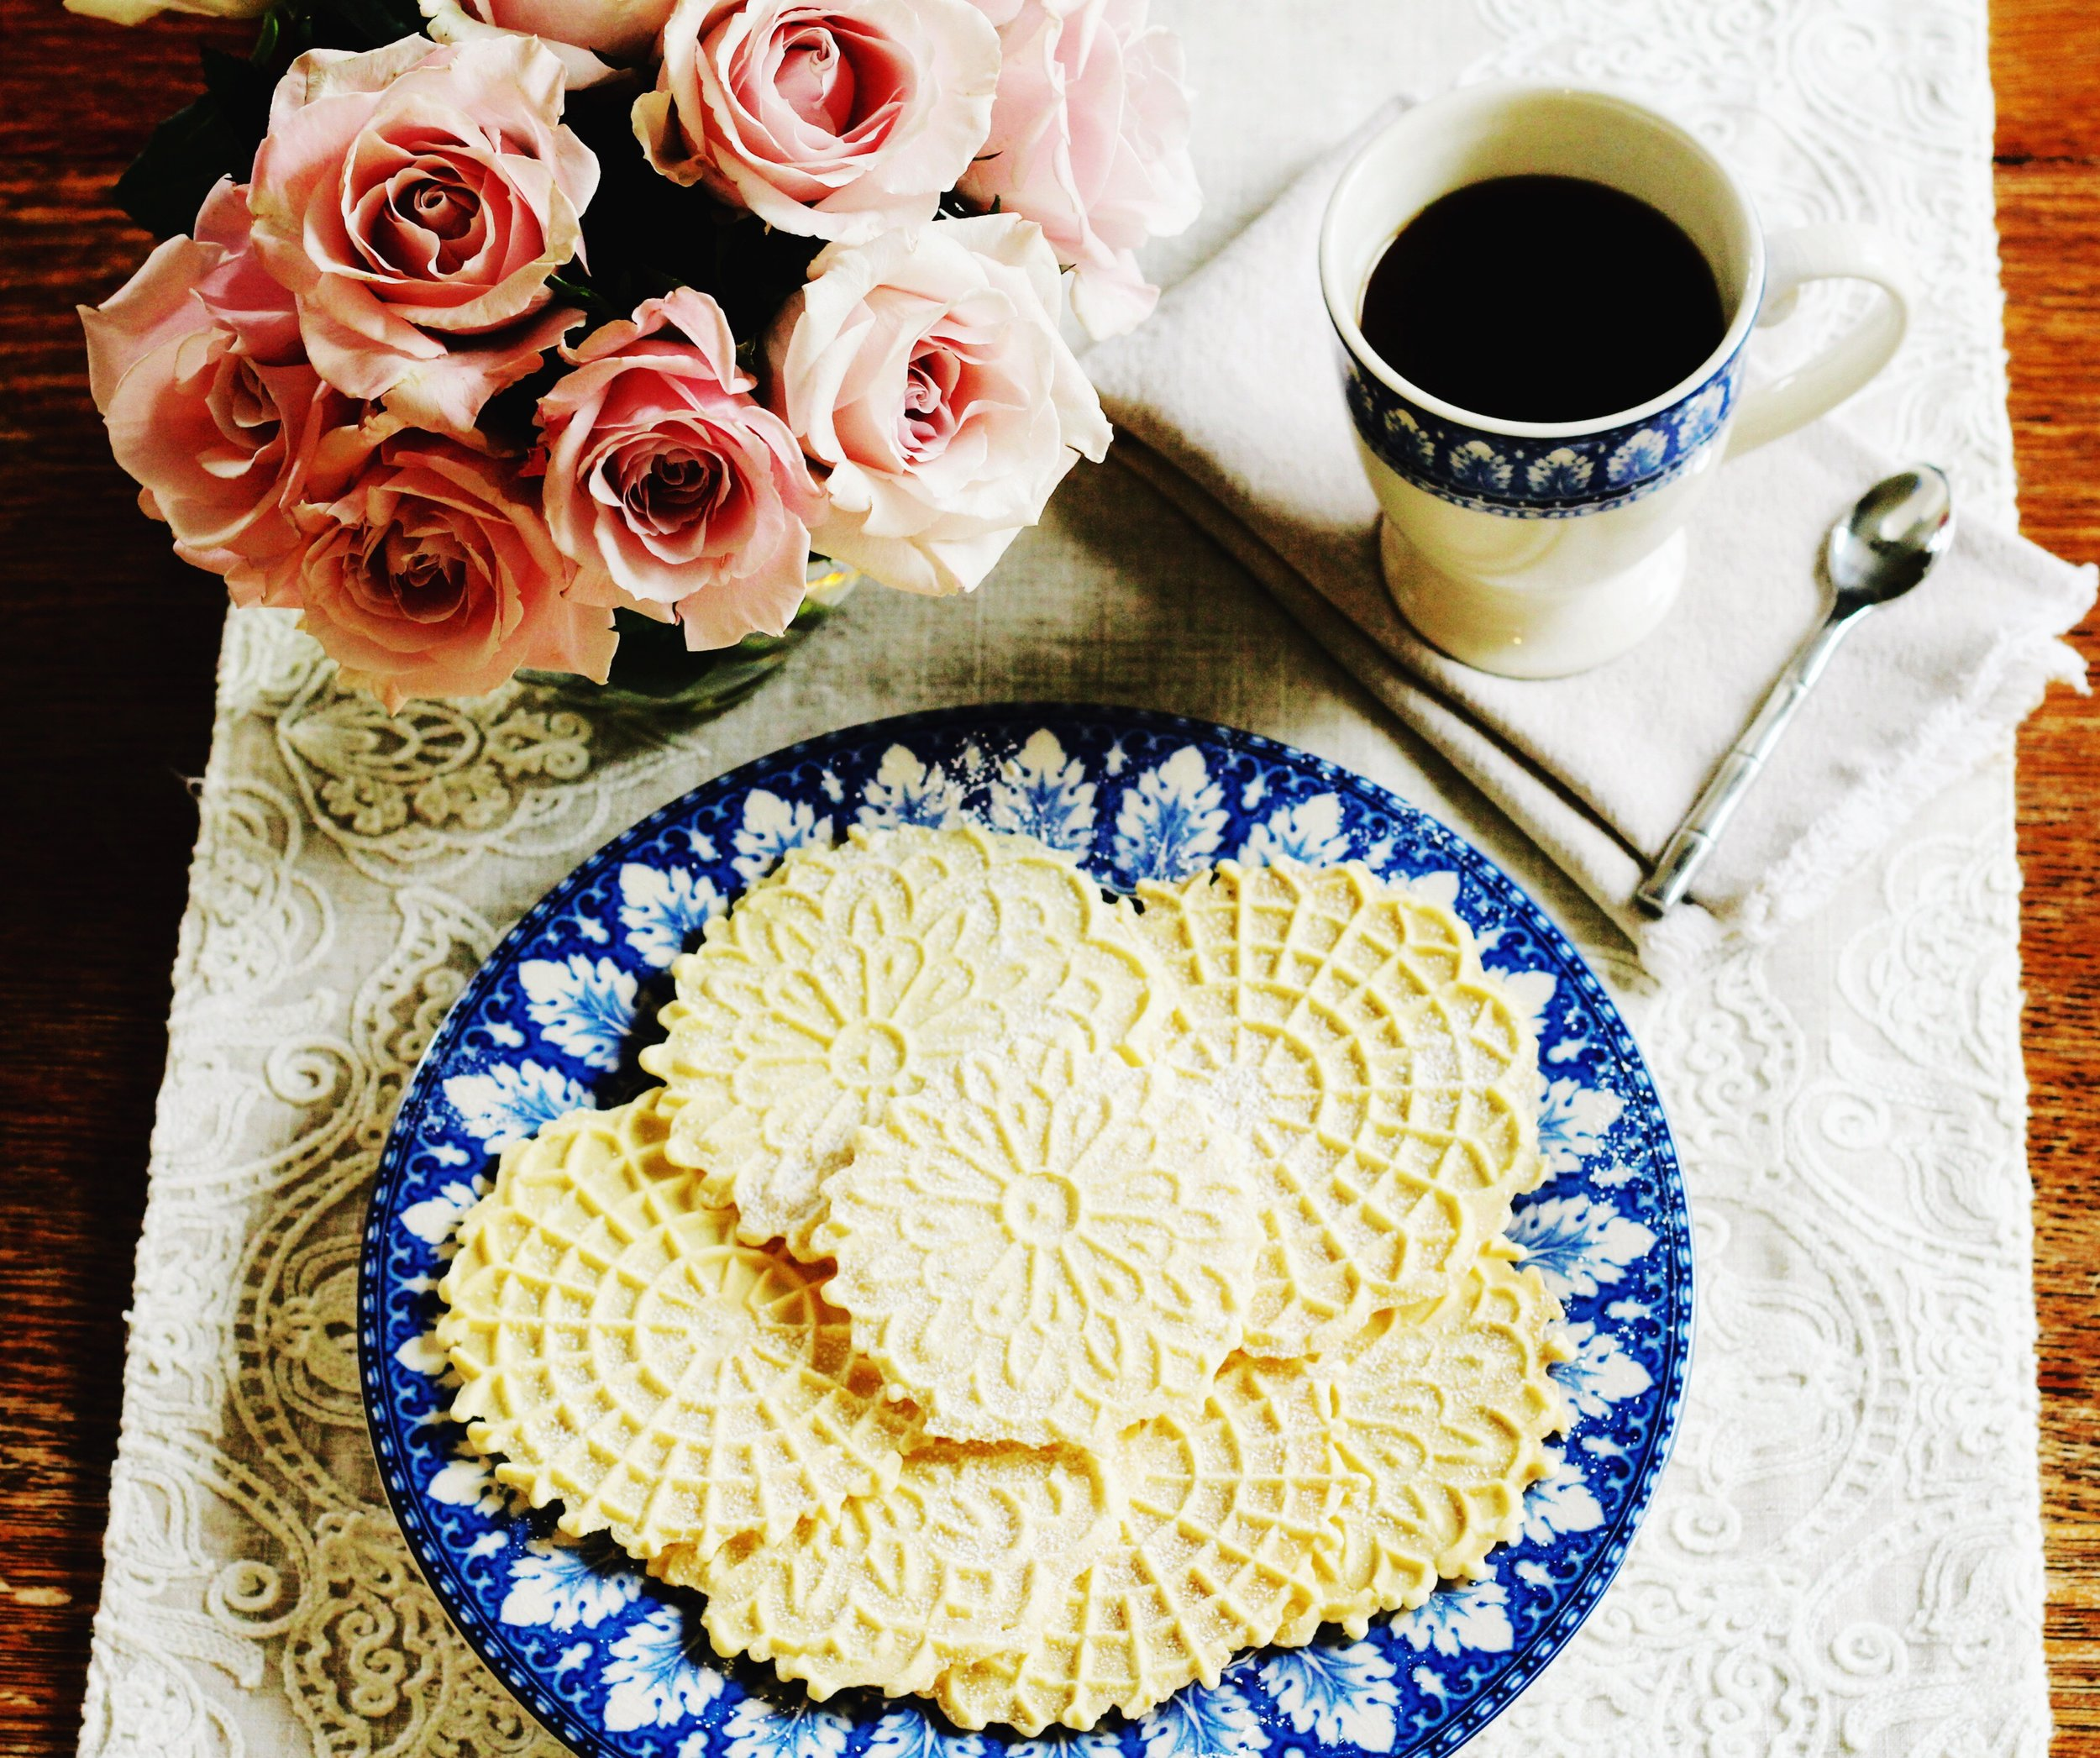 Pizzelle Cookie Recipe by Jennifer Lutz at Home